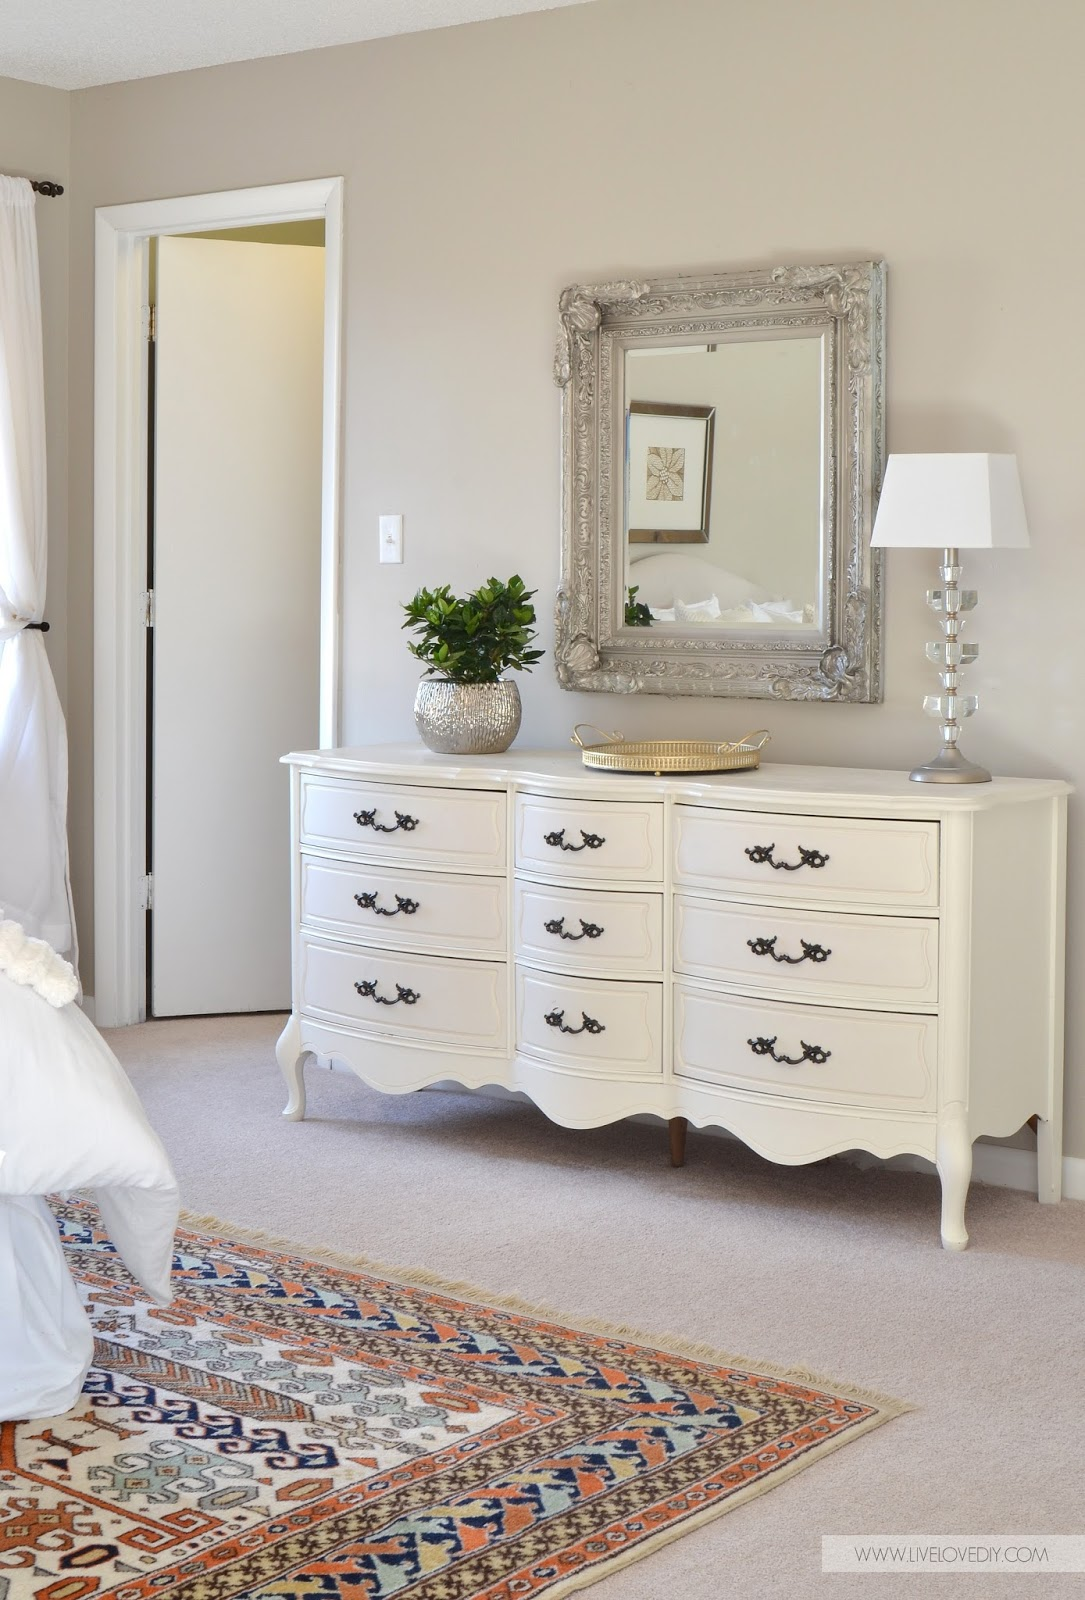 12 ultra glamorous vintage dressers for your home 10419 | white glamorous vintage dresser in bedroom